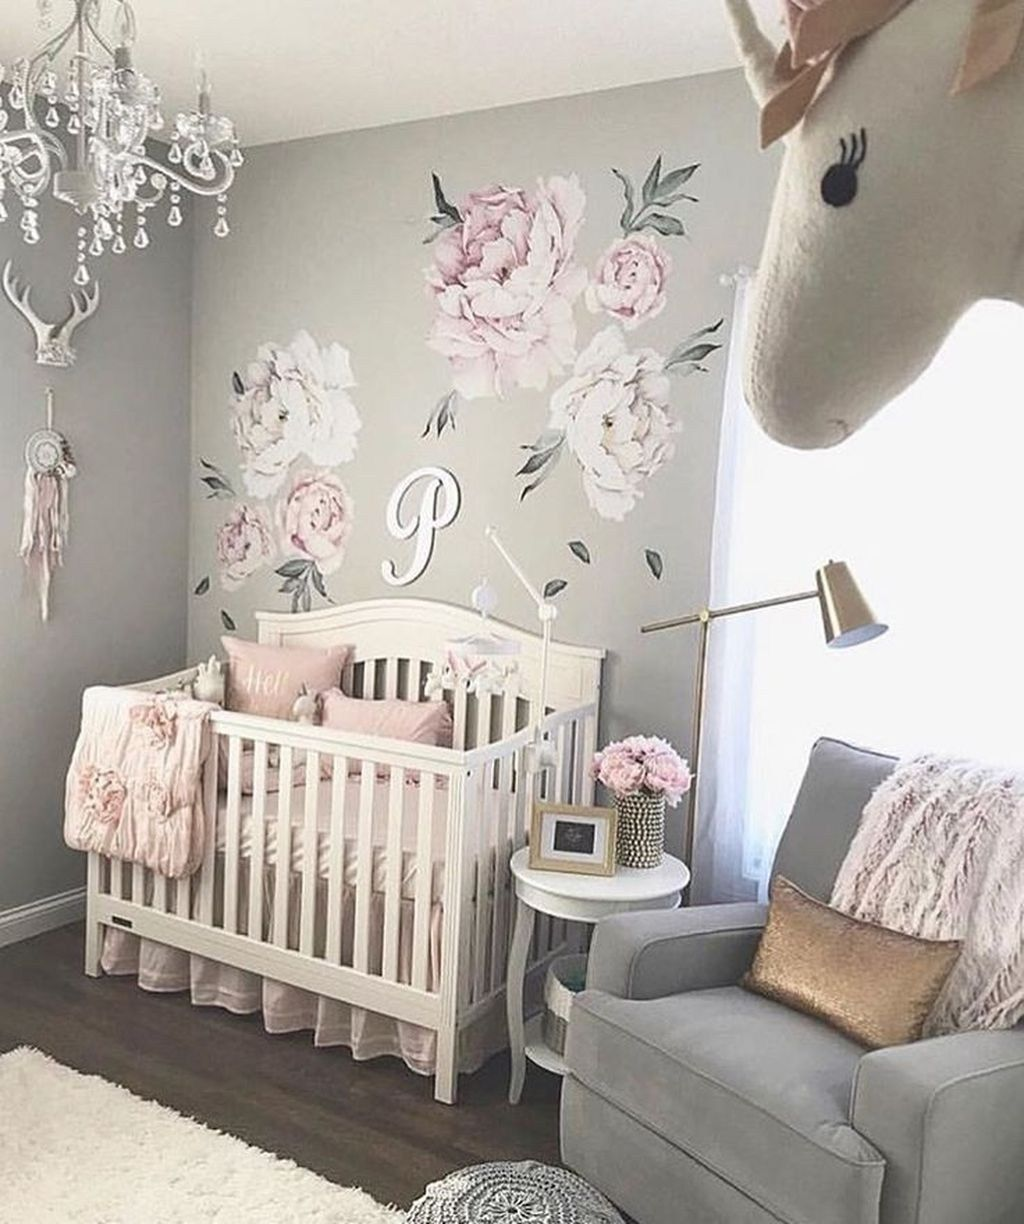 Best Creative Baby Nursery Decor Ideas 13 Baby Nursery Decor 400 x 300